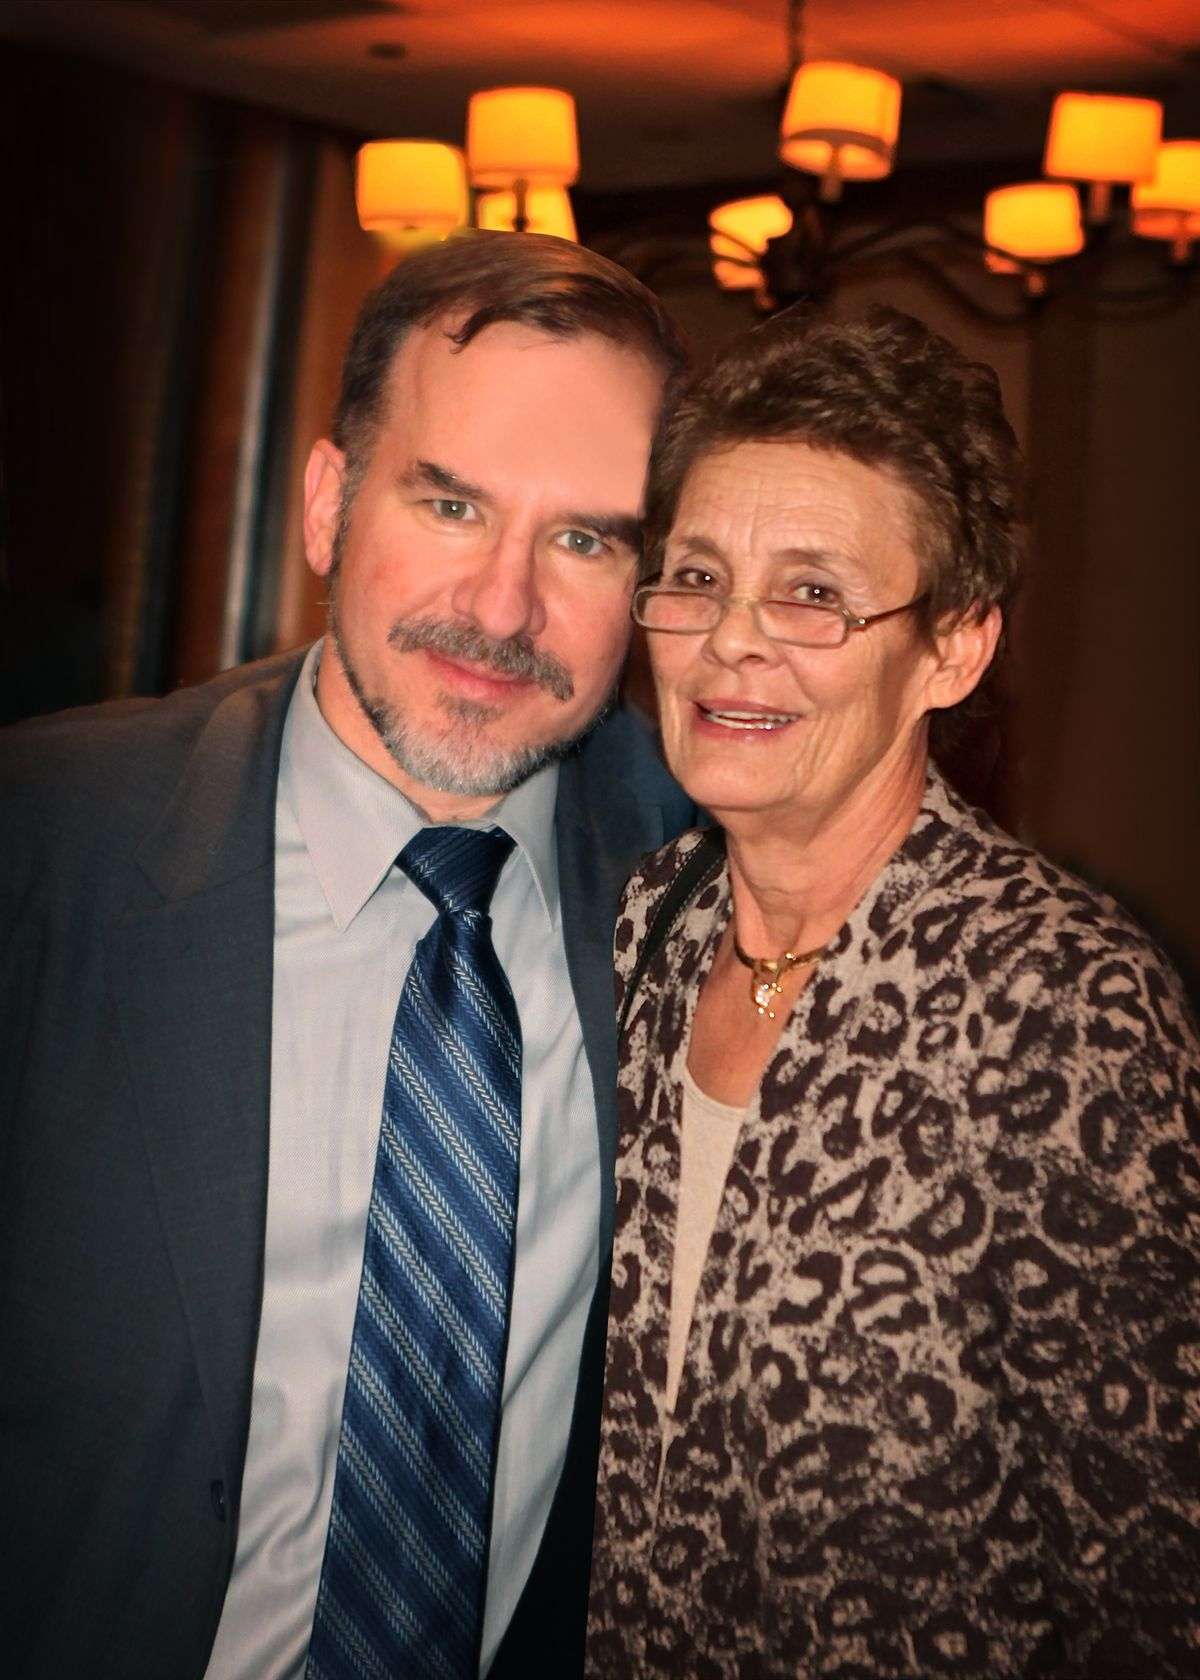 Neil Steinberg and Phyllis Smith at a book signing at Petterino's in 2012. | Provided